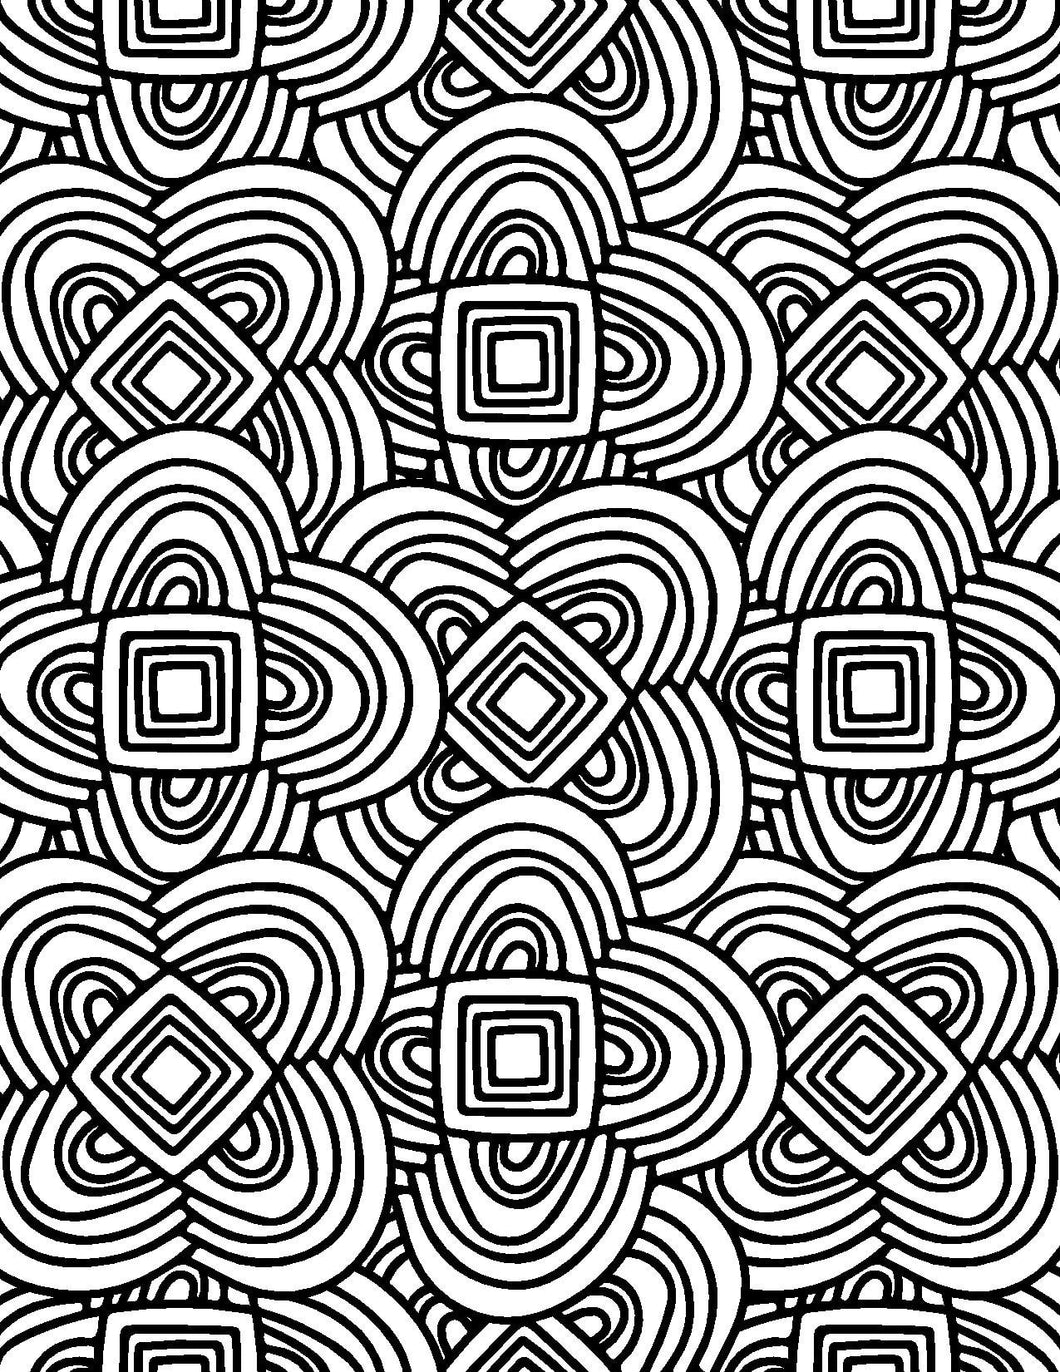 geometric designs for adults who color live your life in color